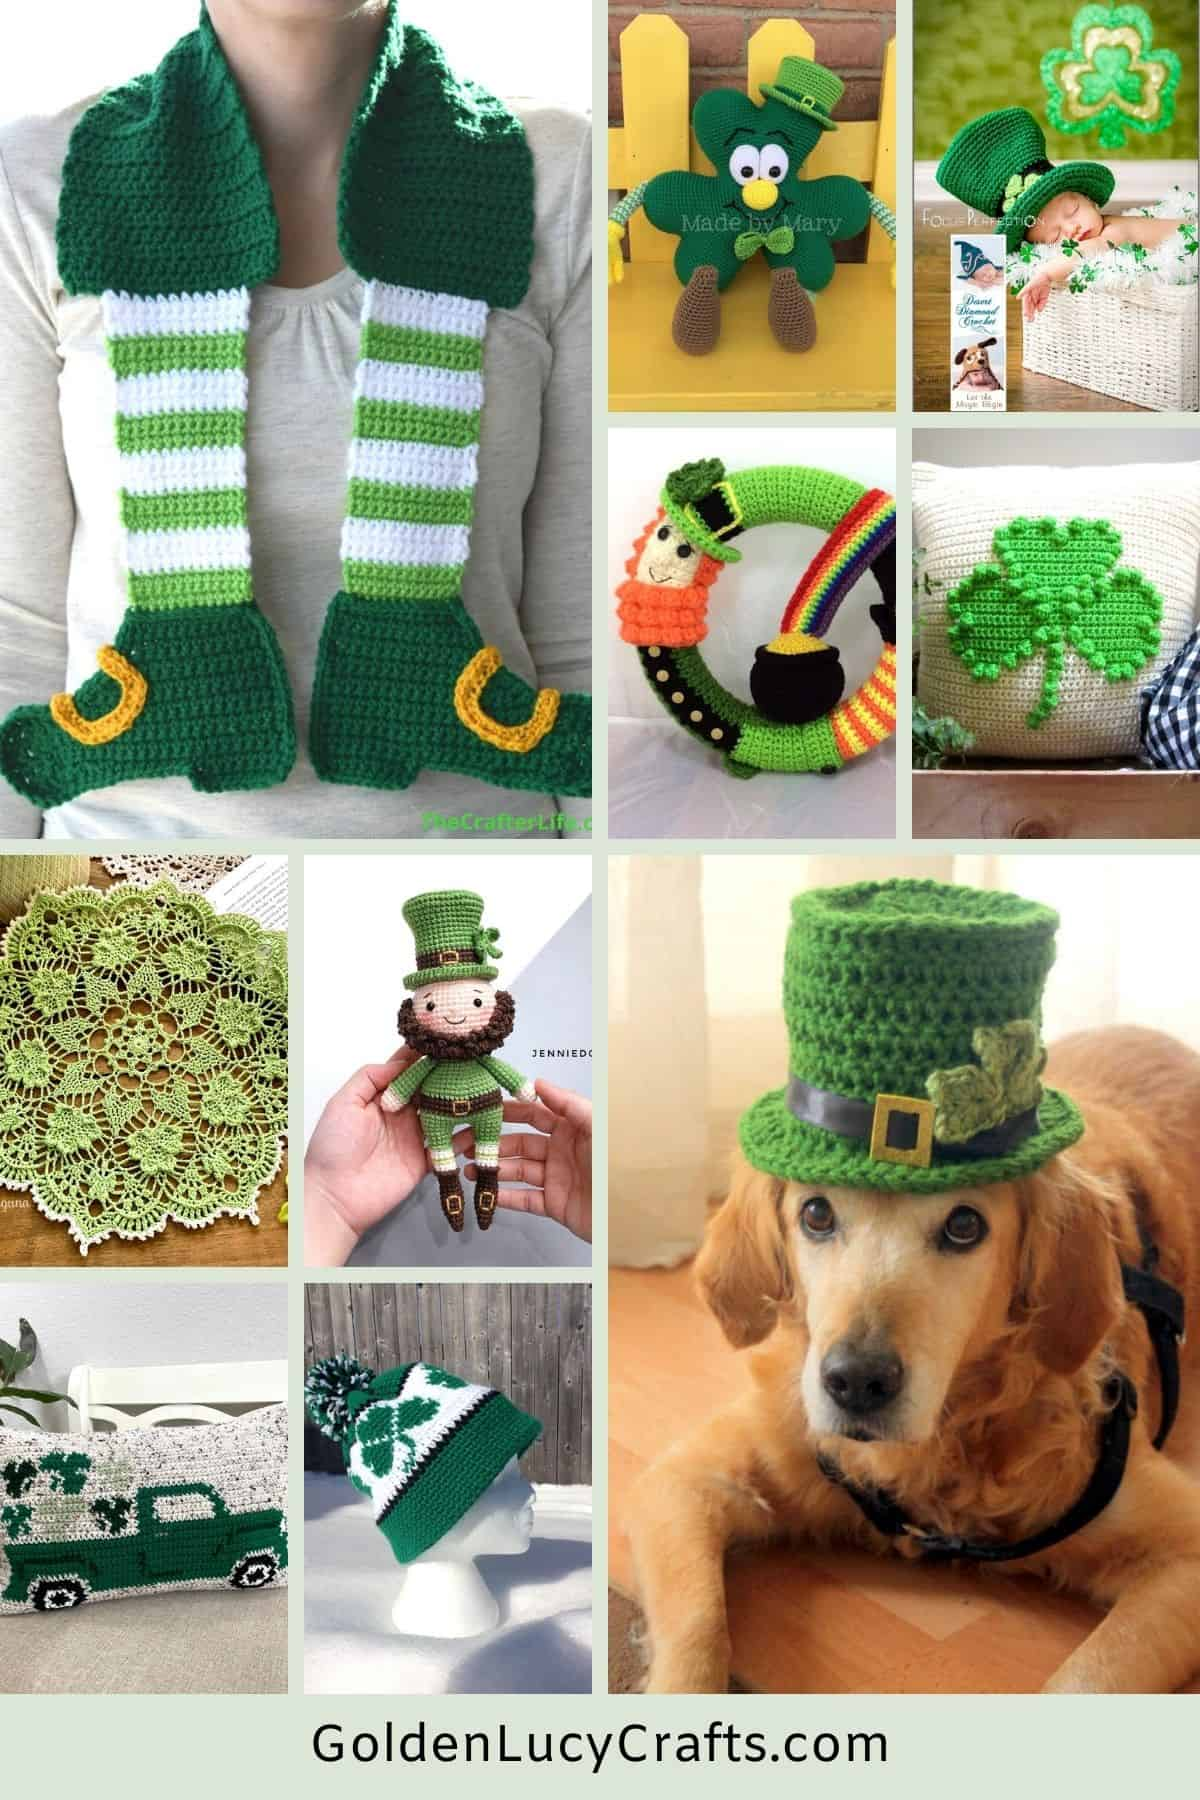 Crochet for St. Patrick's Day picture collage.